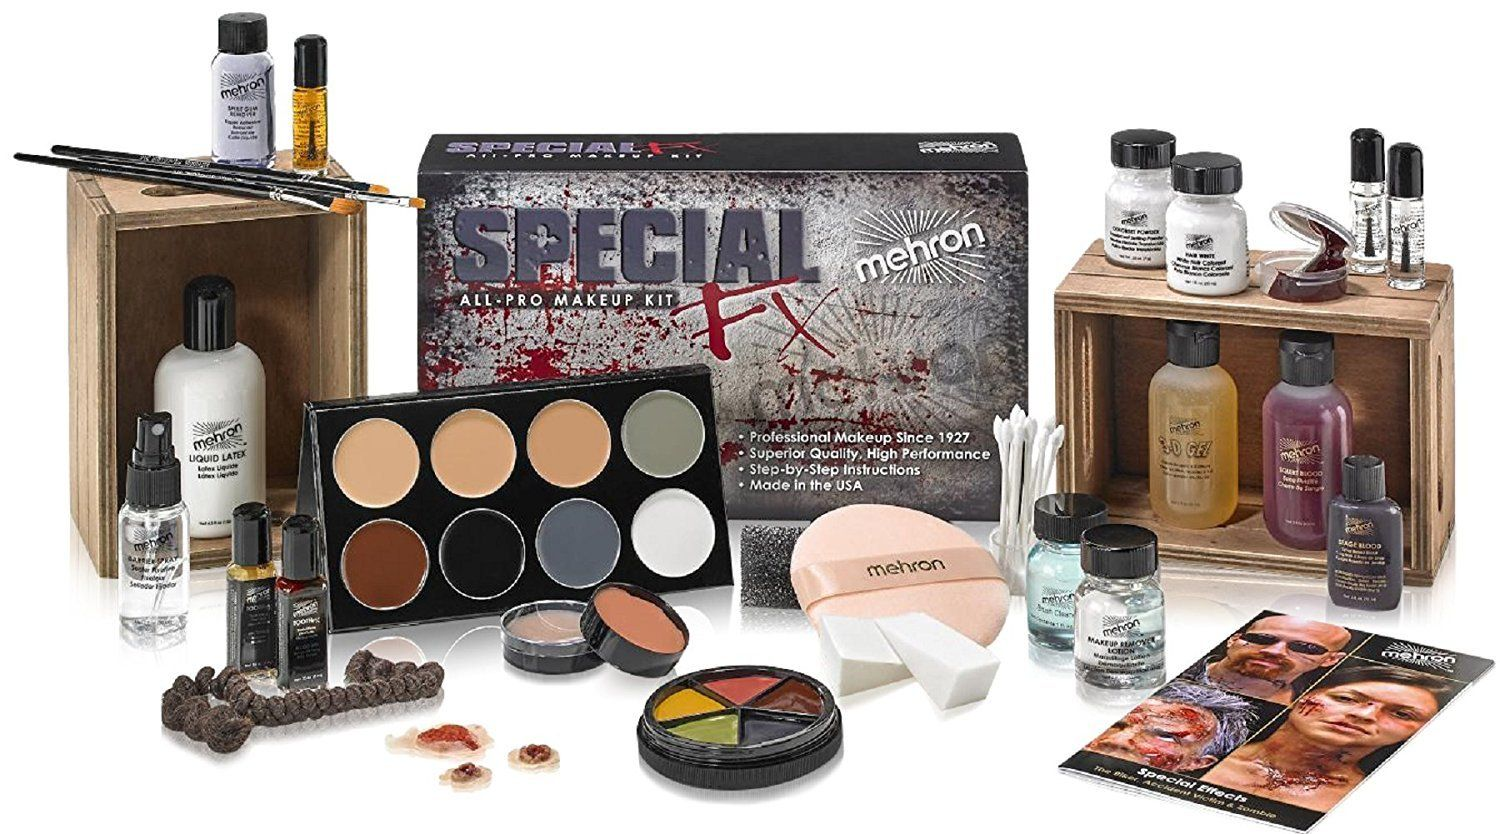 44 New Look Special Effects Makeup Kit On The Site in 2020